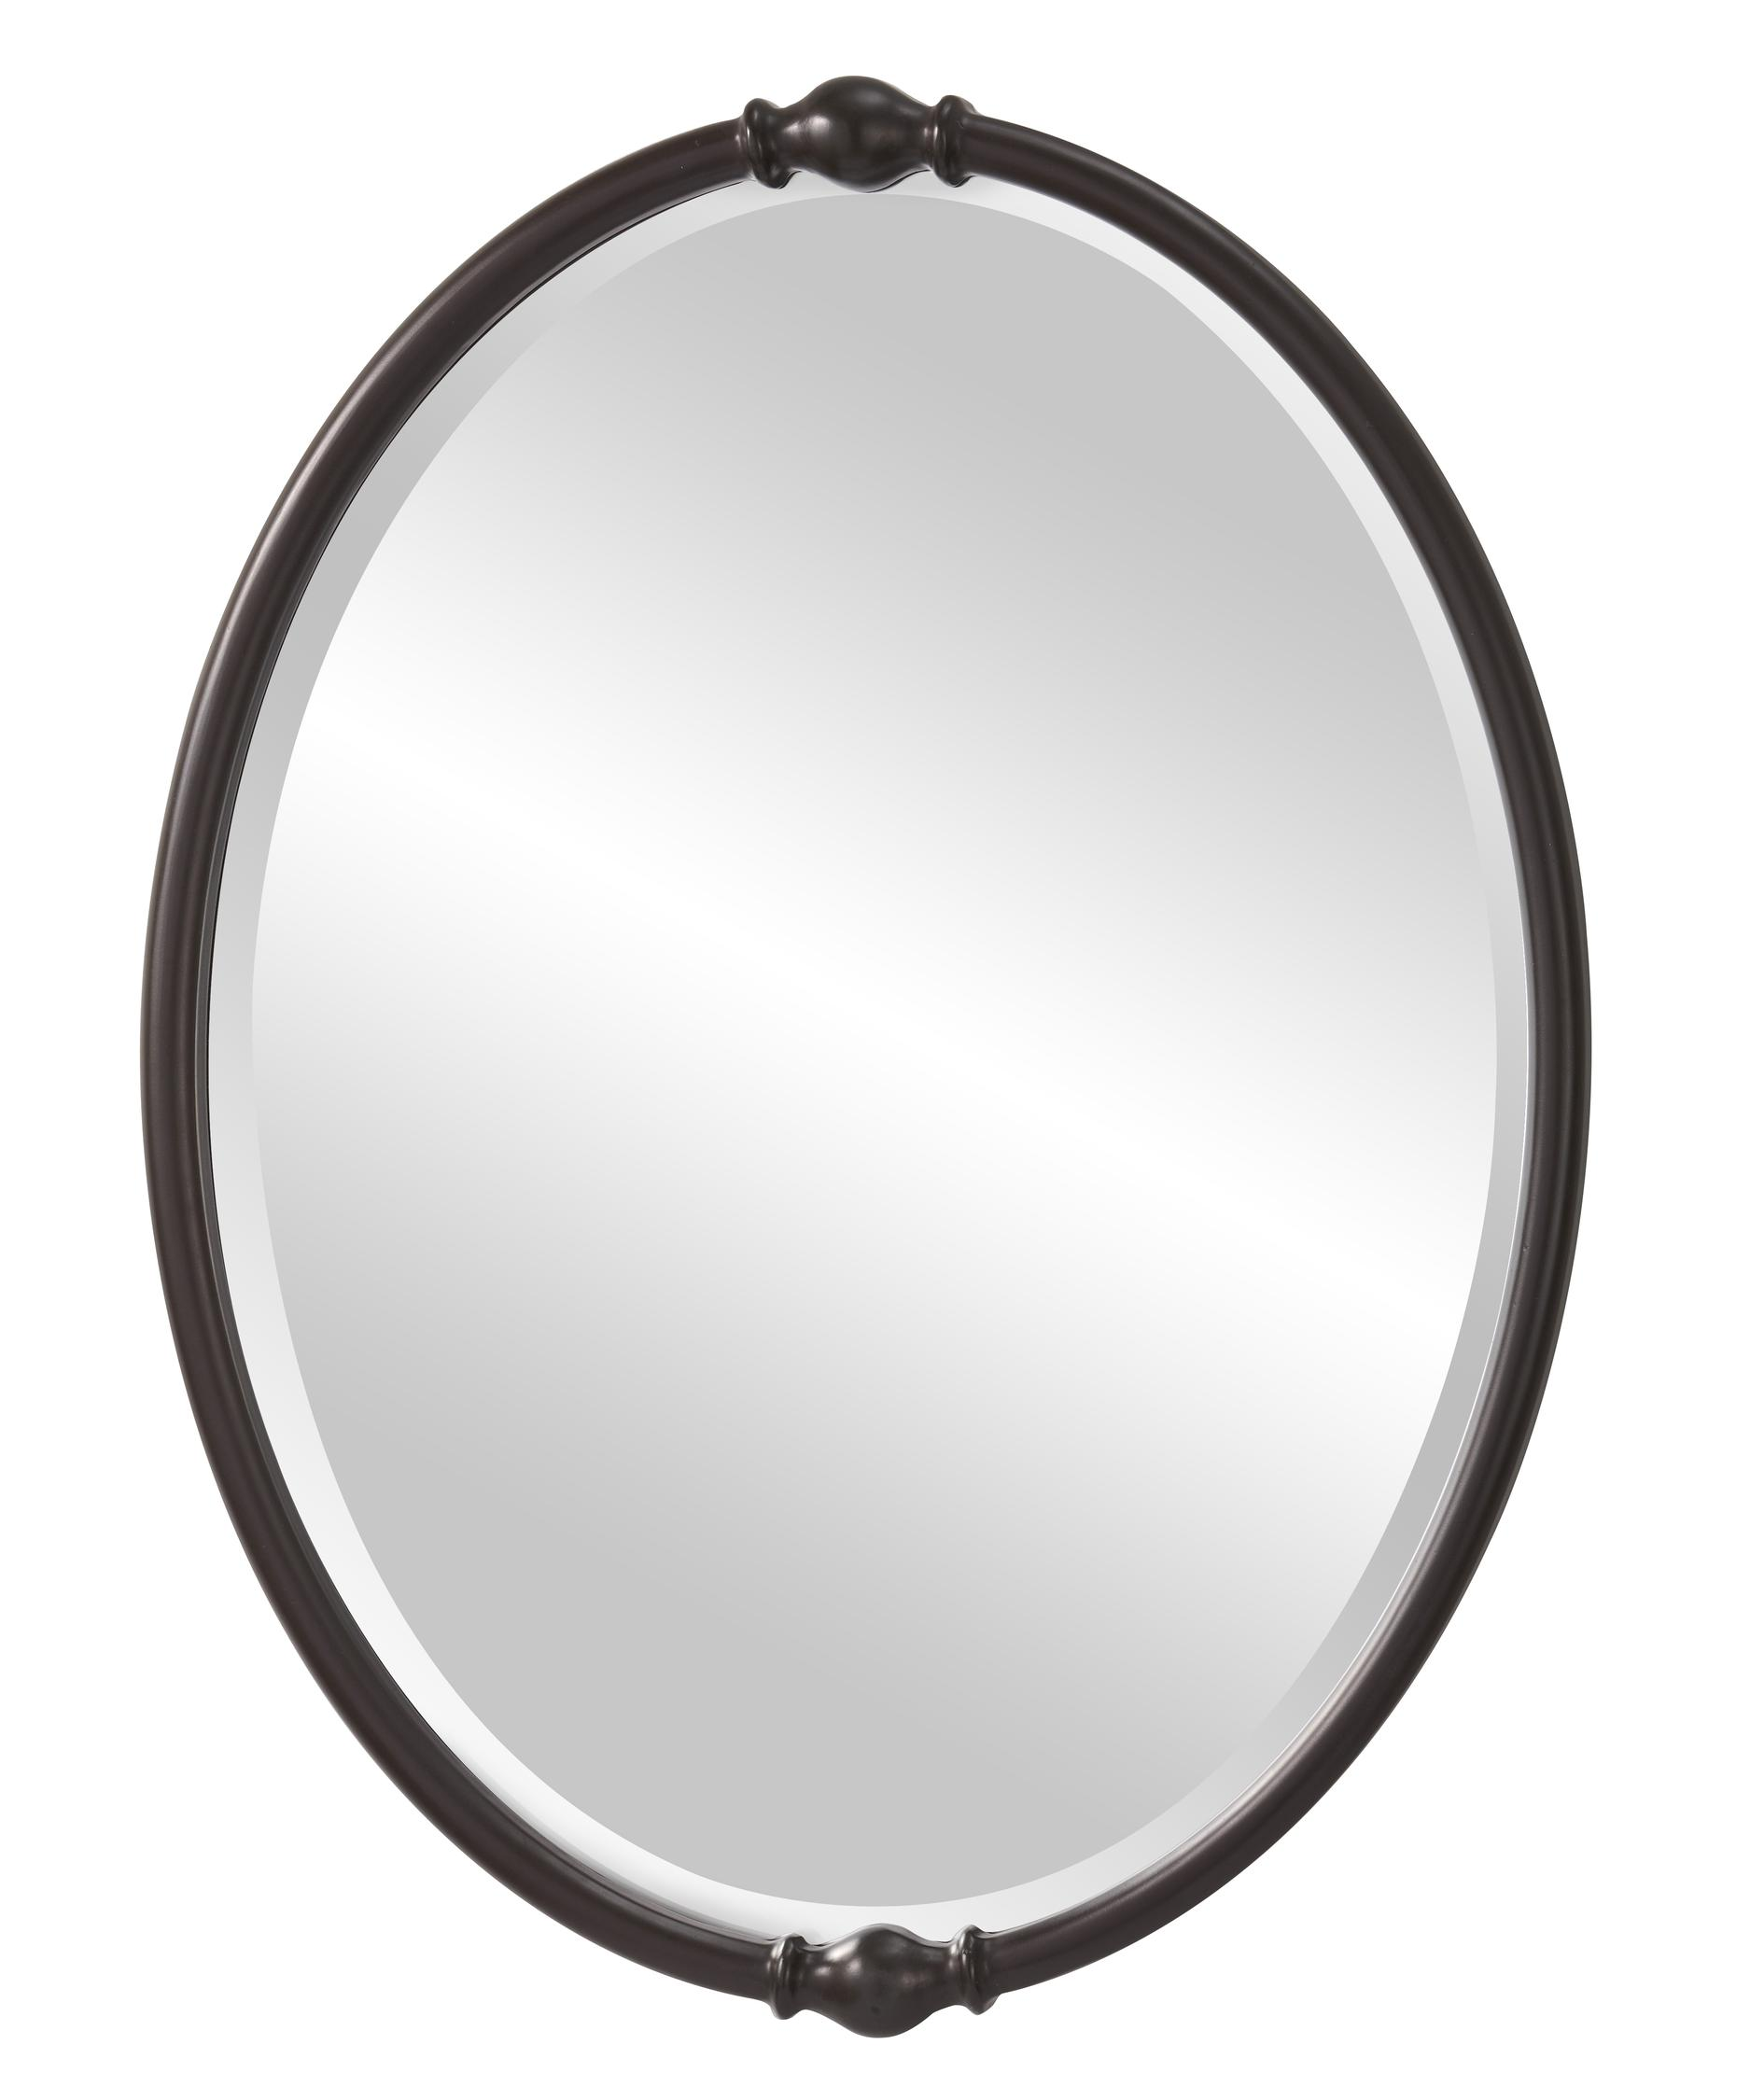 Murray Feiss Mr1119 Jackie Oval Wall Mirror Capitol Lighting 1